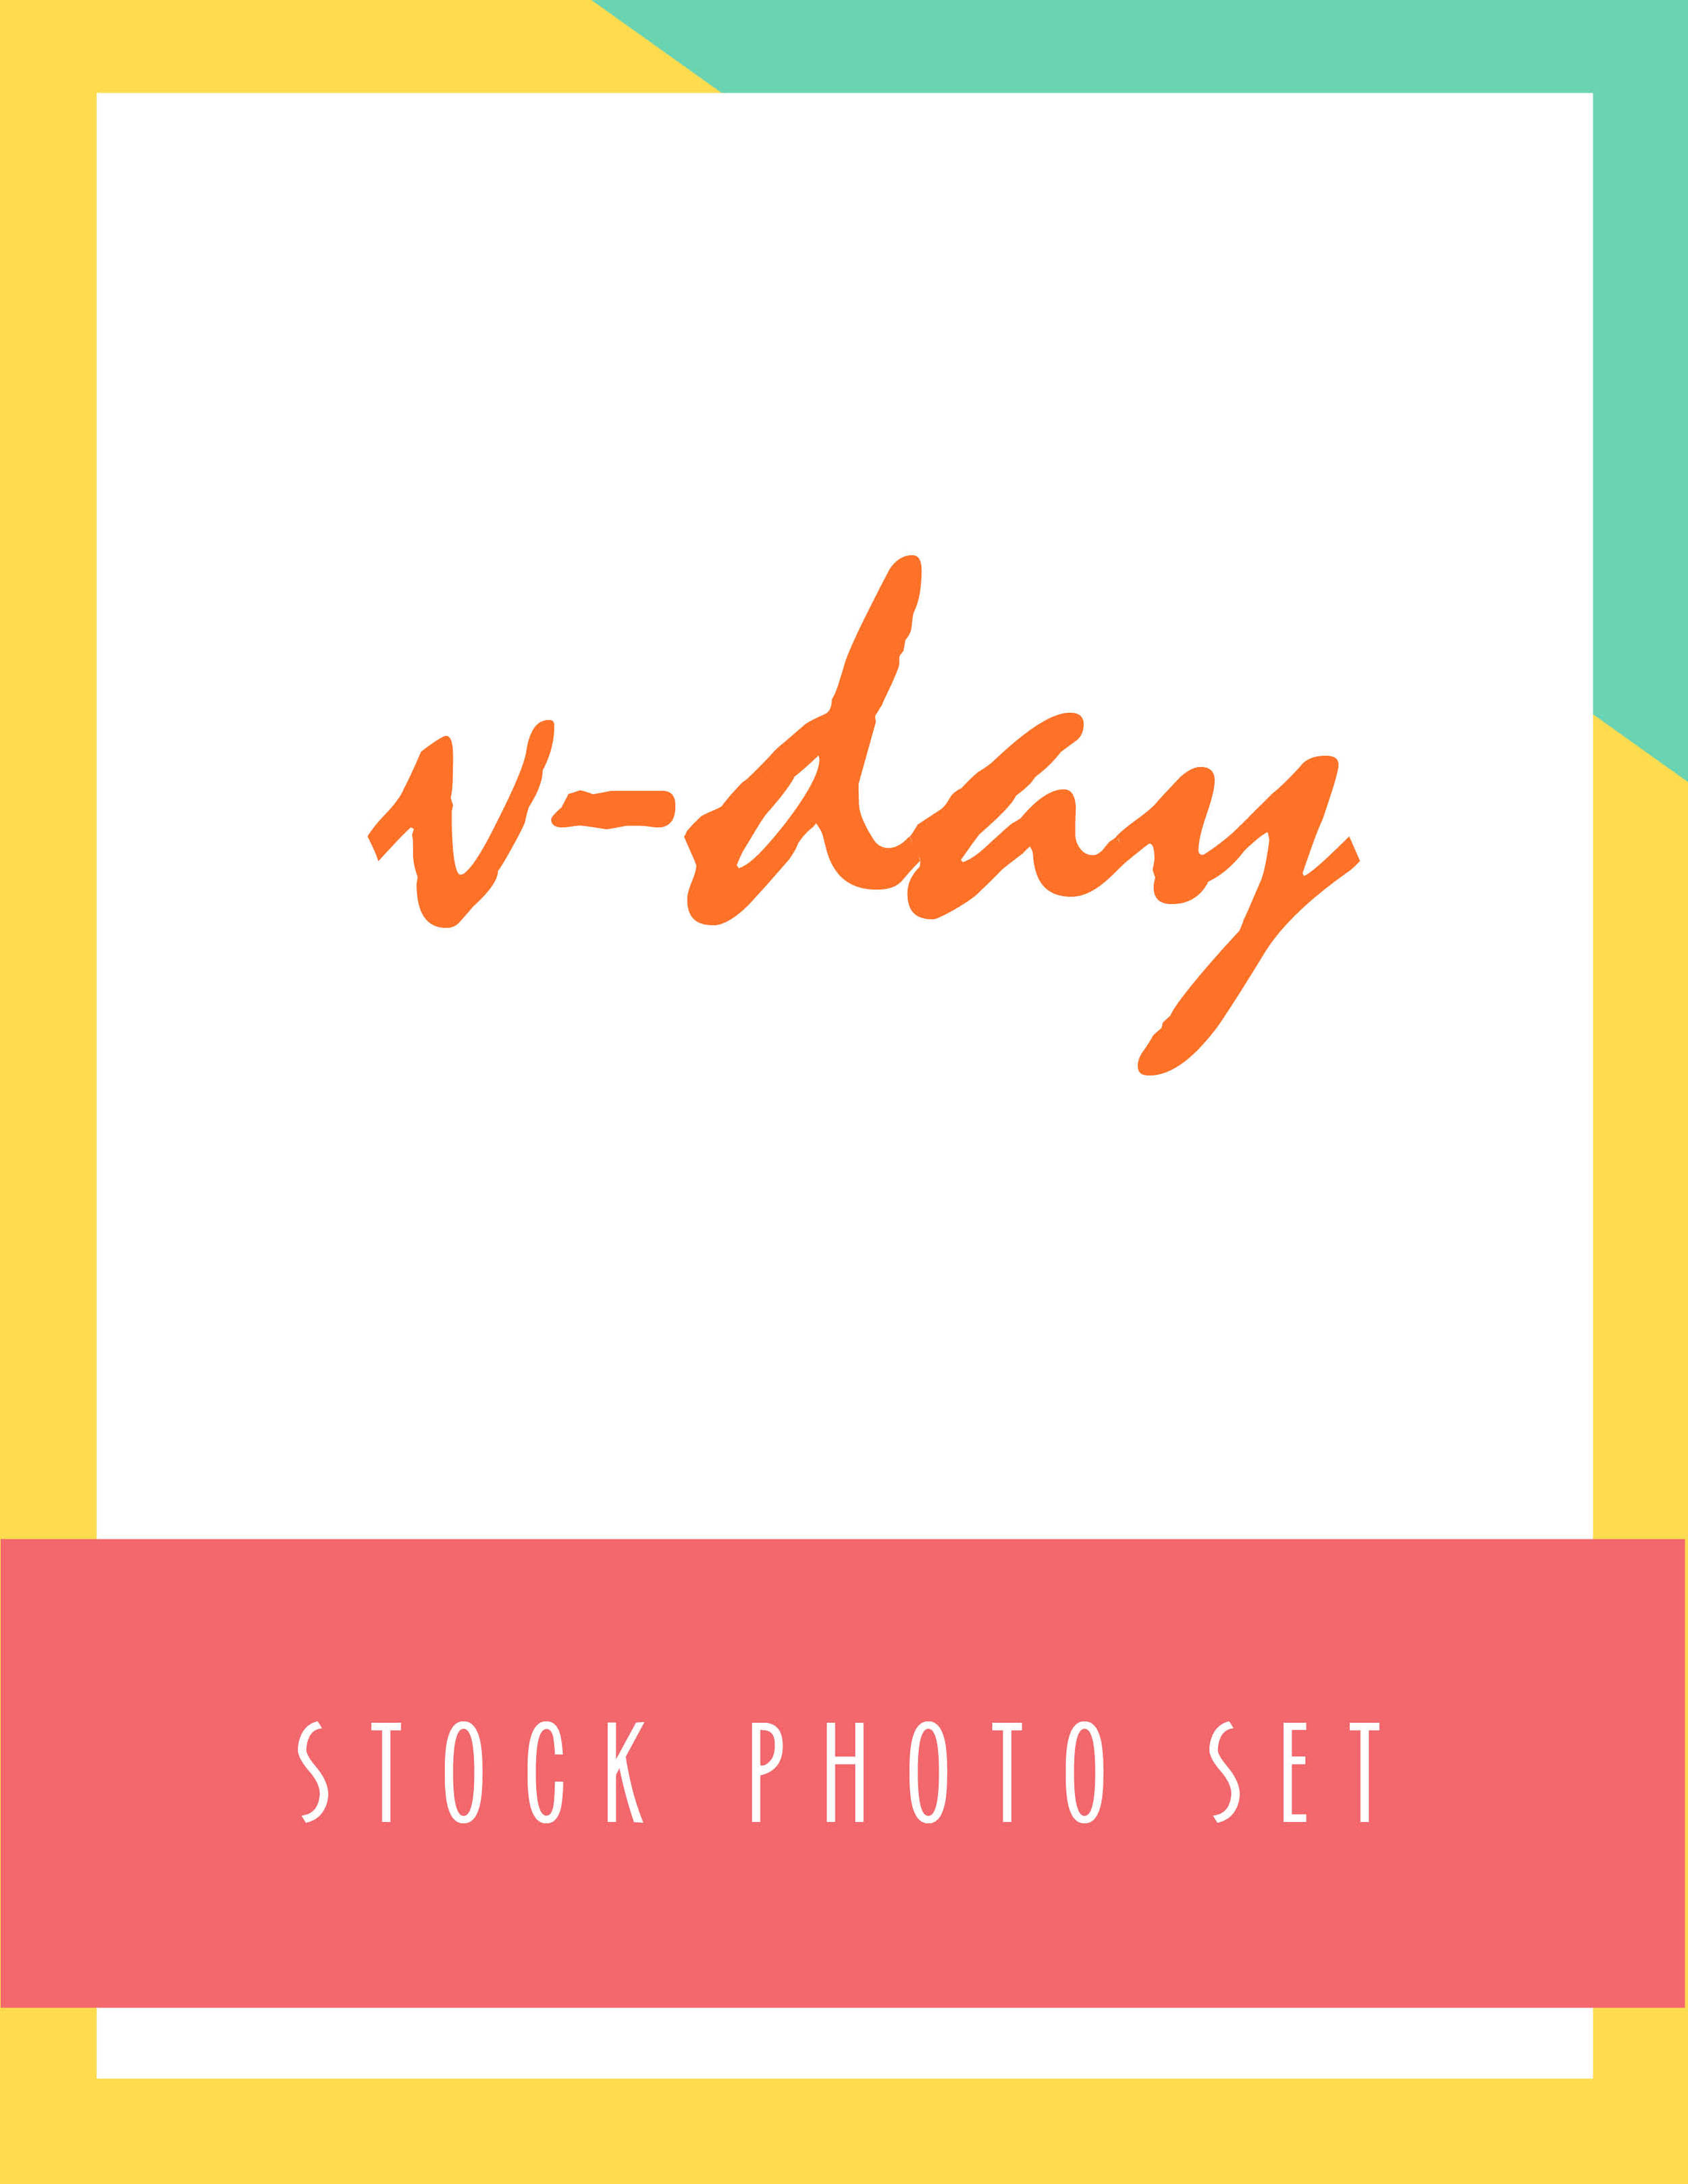 Bold & Pop V-day Stock Photo Set